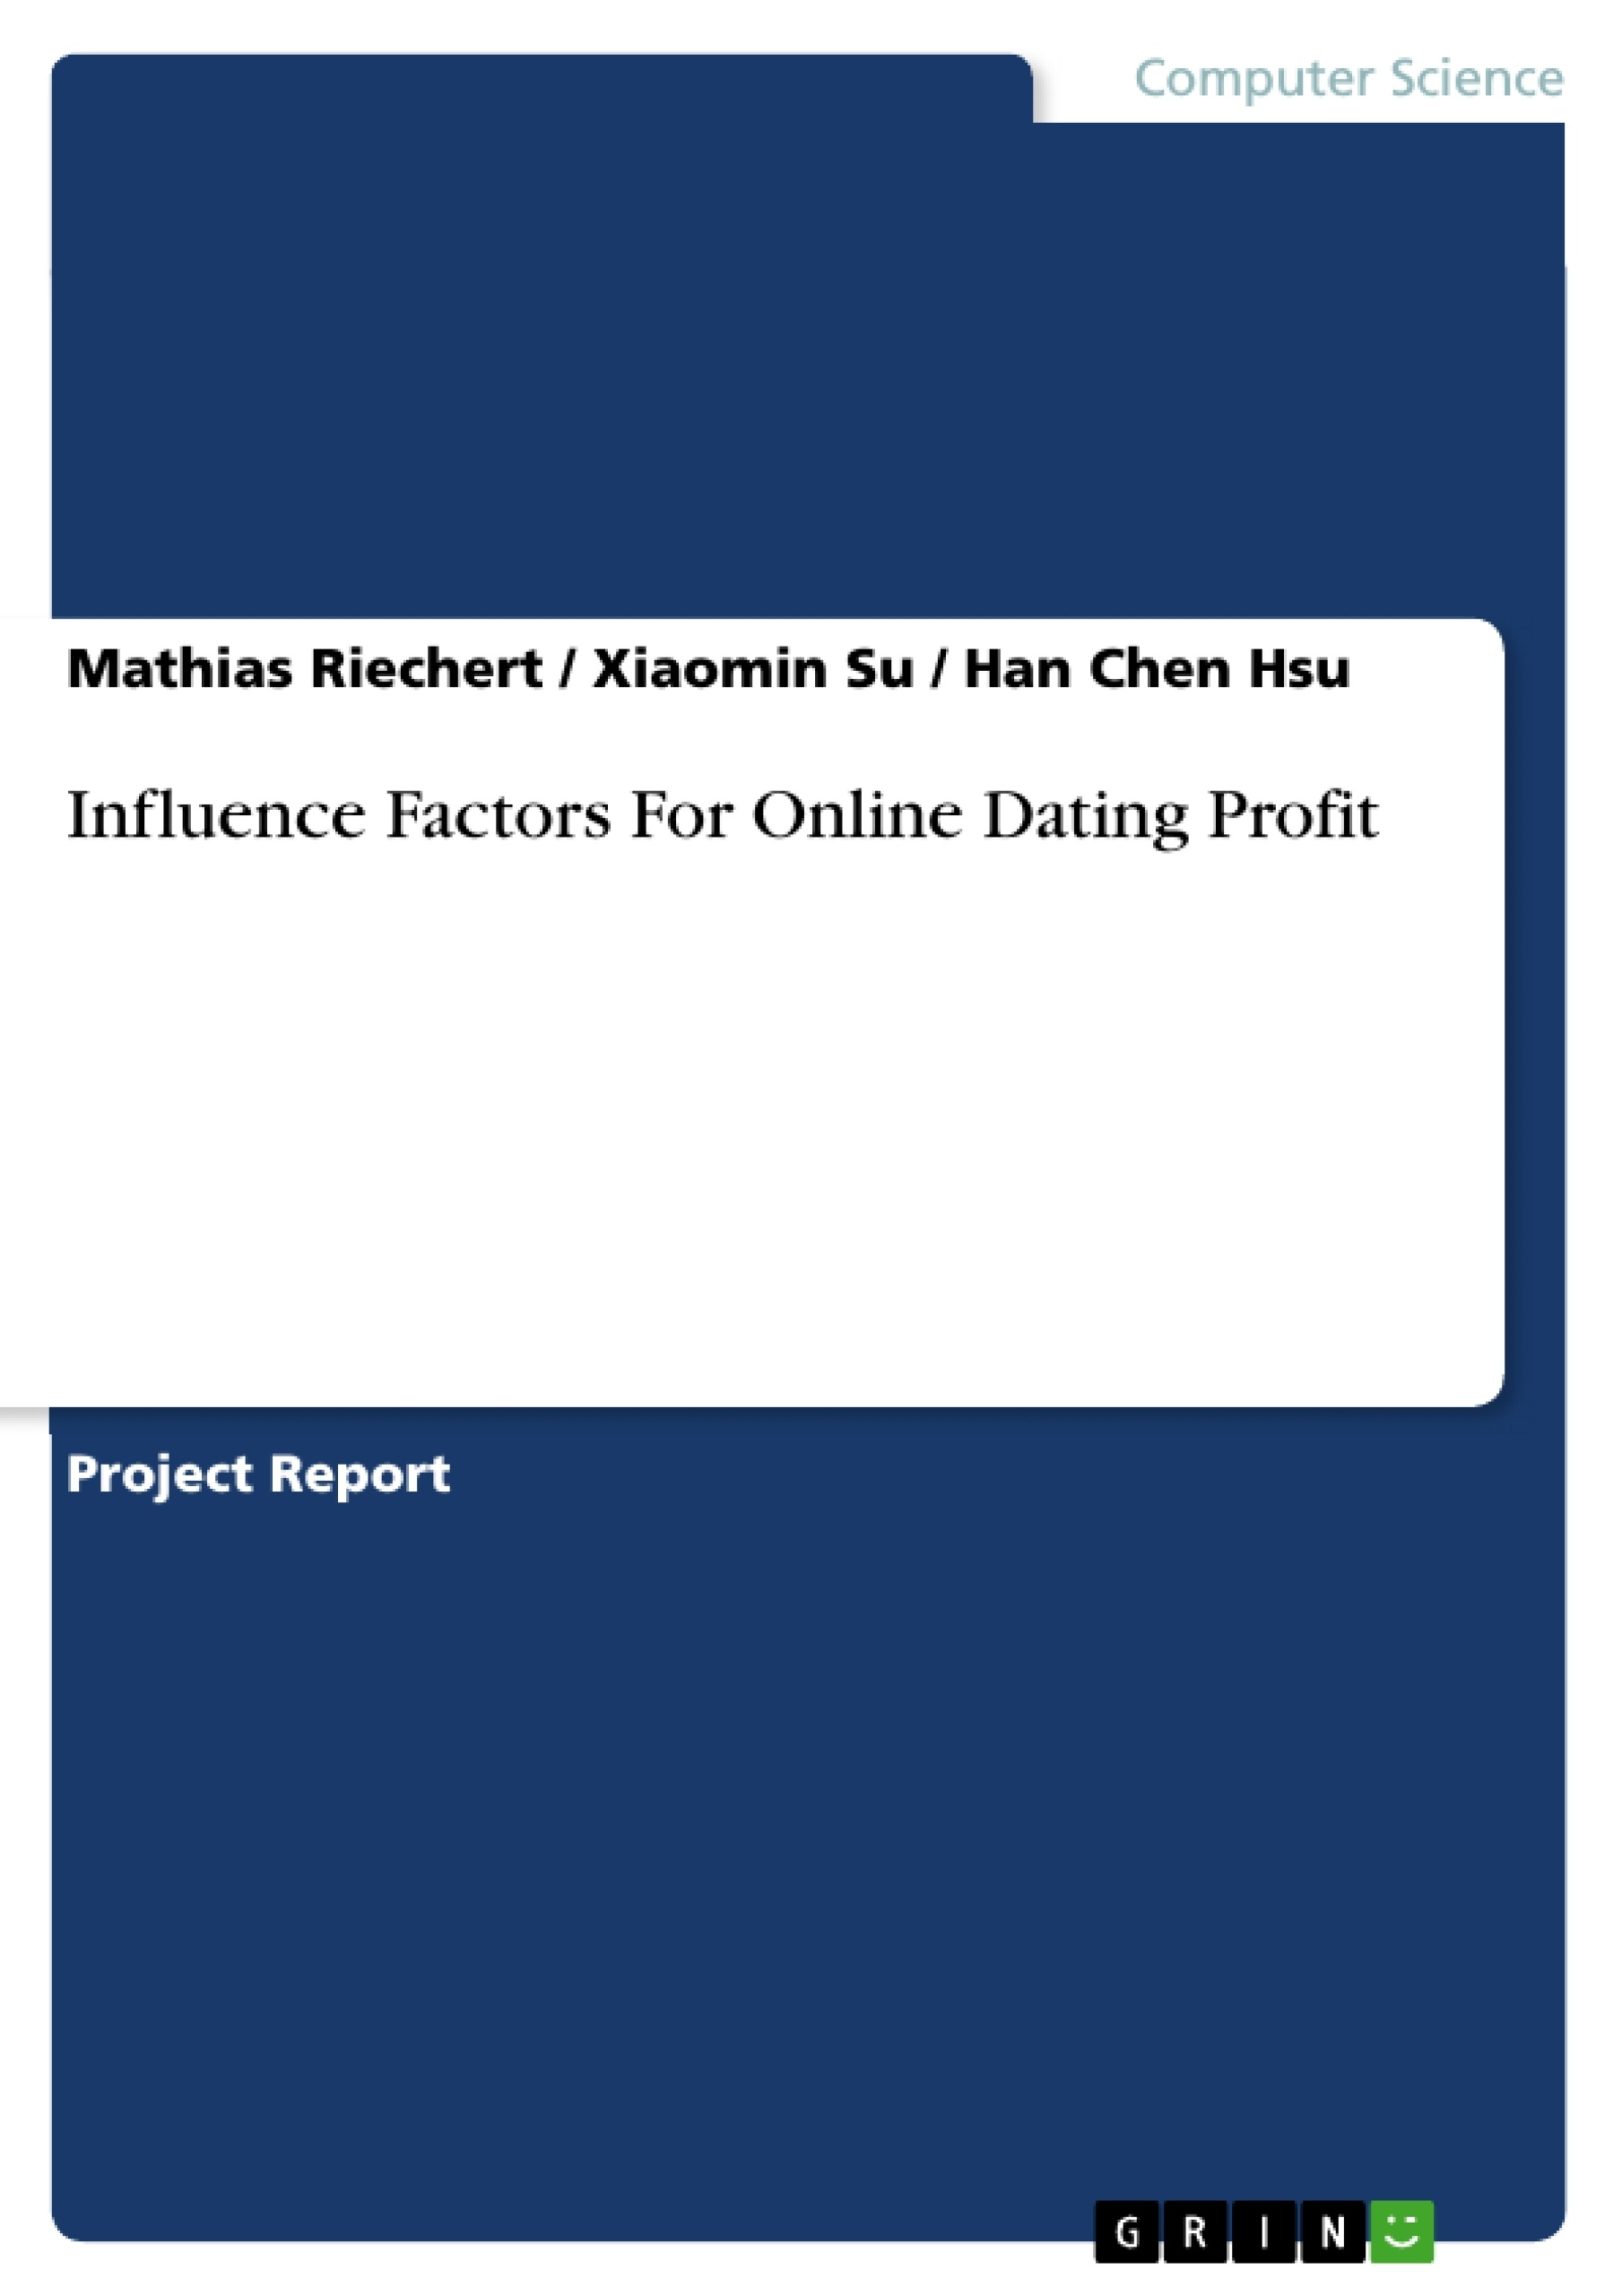 Title: Influence Factors For Online Dating Profit